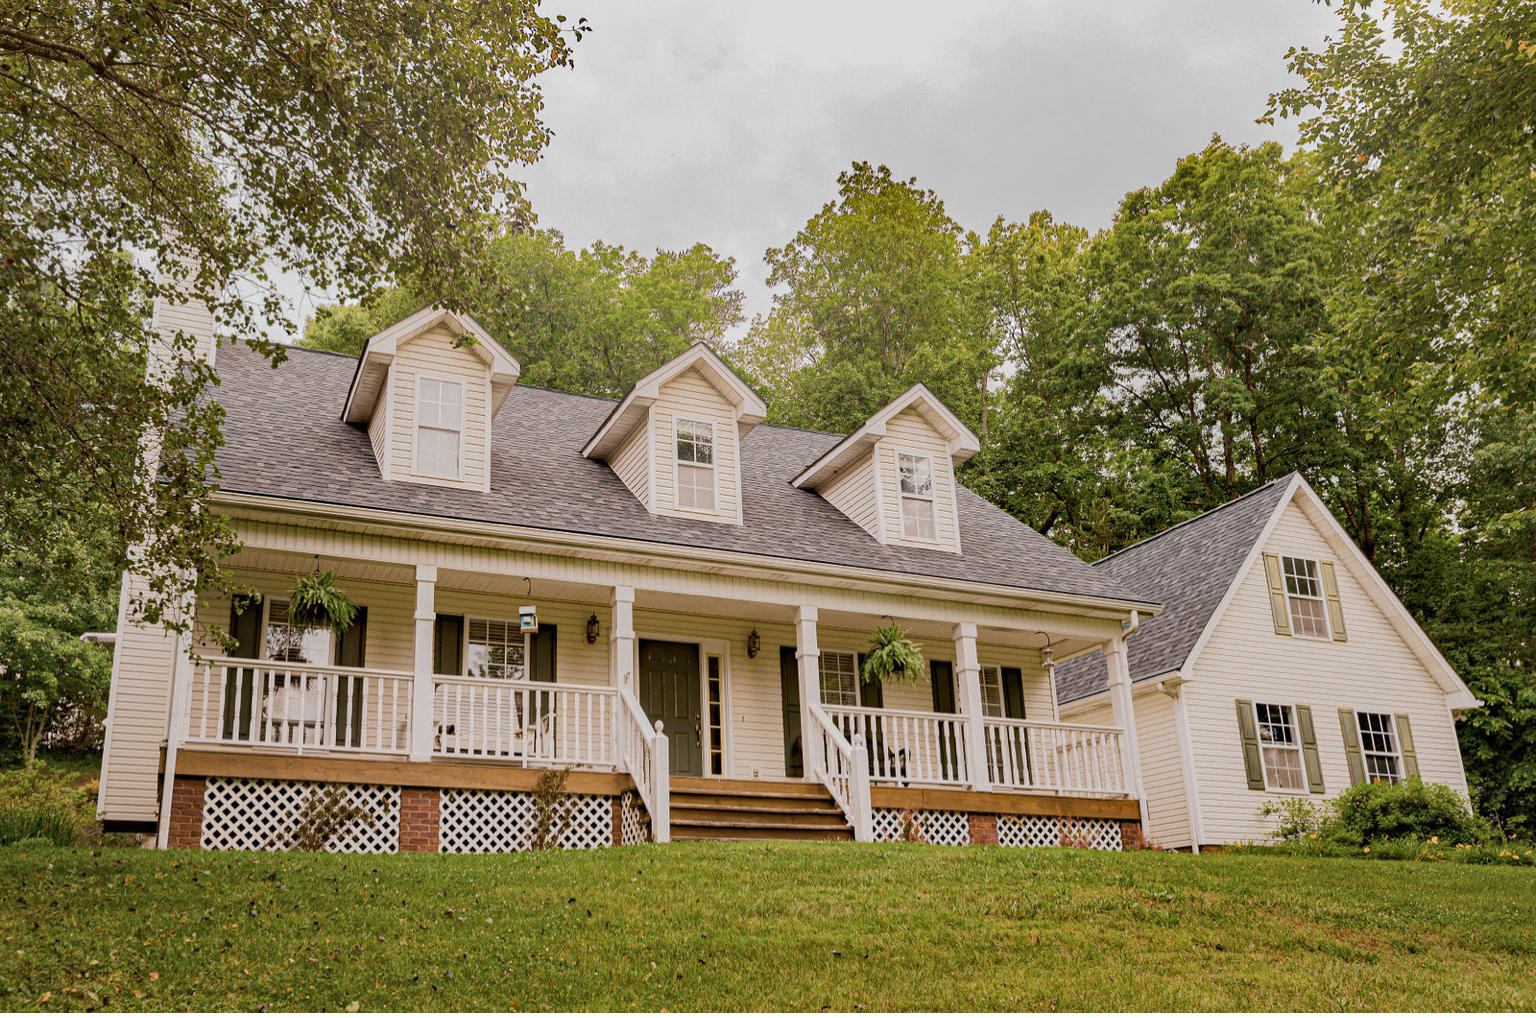 1350 Springview Circle, Seymour, Tennessee 37865, 3 Bedrooms Bedrooms, ,3 BathroomsBathrooms,Single Family,For Sale,Springview,1118305